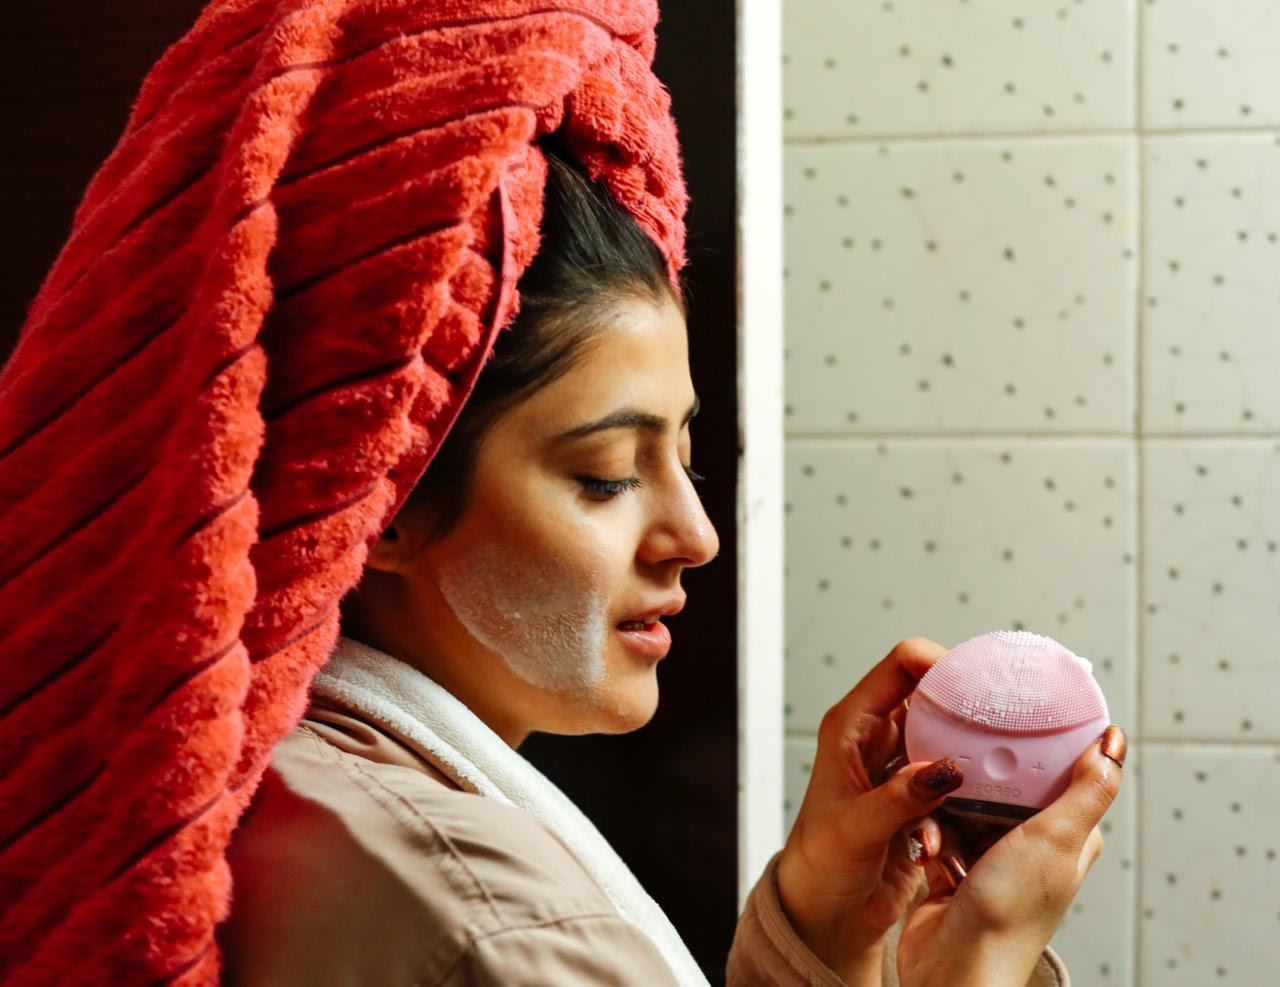 foreo LUNA mini 2 review saloni sehra 4